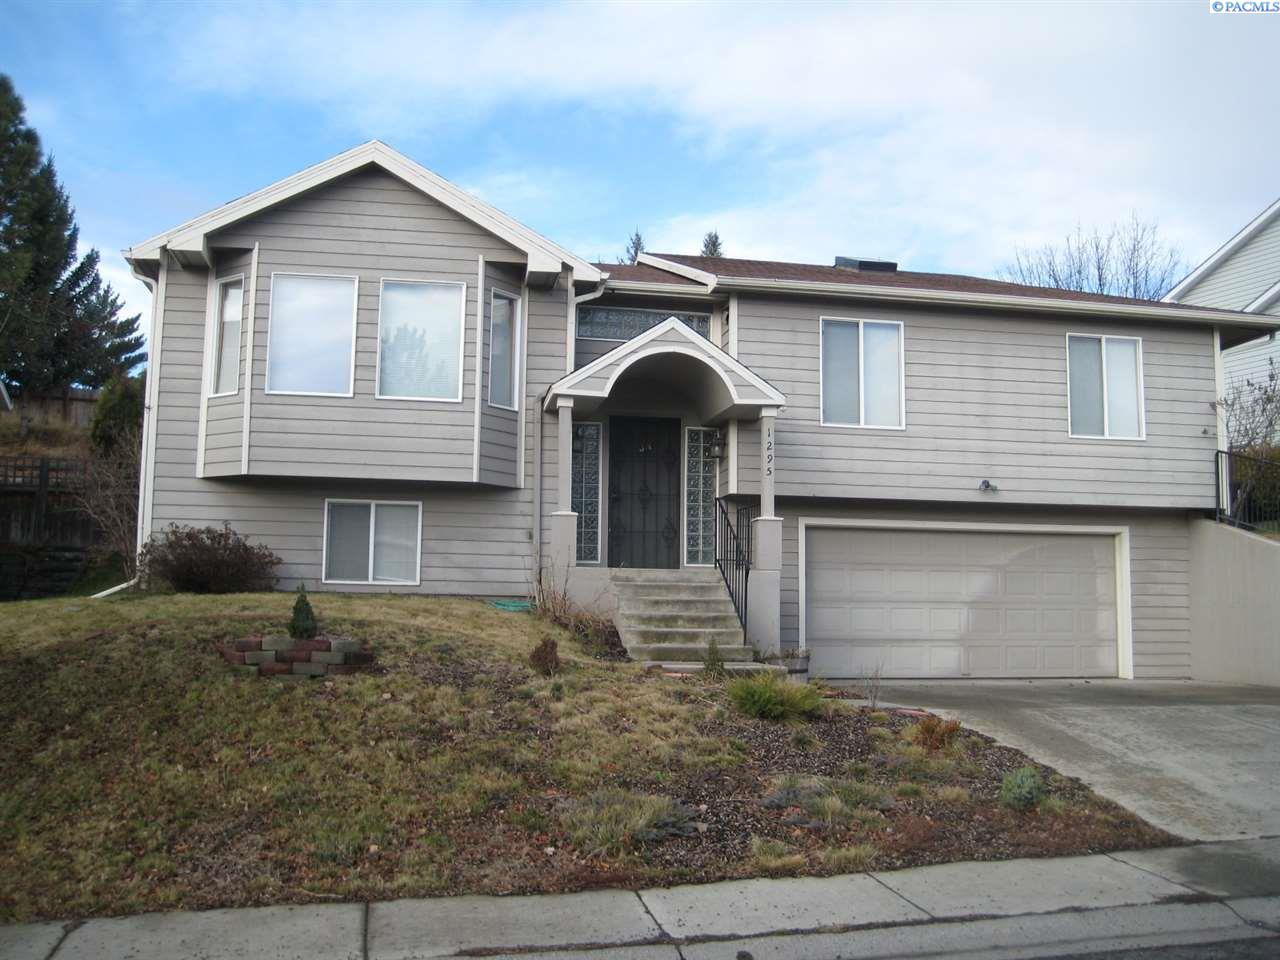 Single Family Home for Sale at 1295 SE Sunnymead Way 1295 SE Sunnymead Way Pullman, Washington 99163 United States